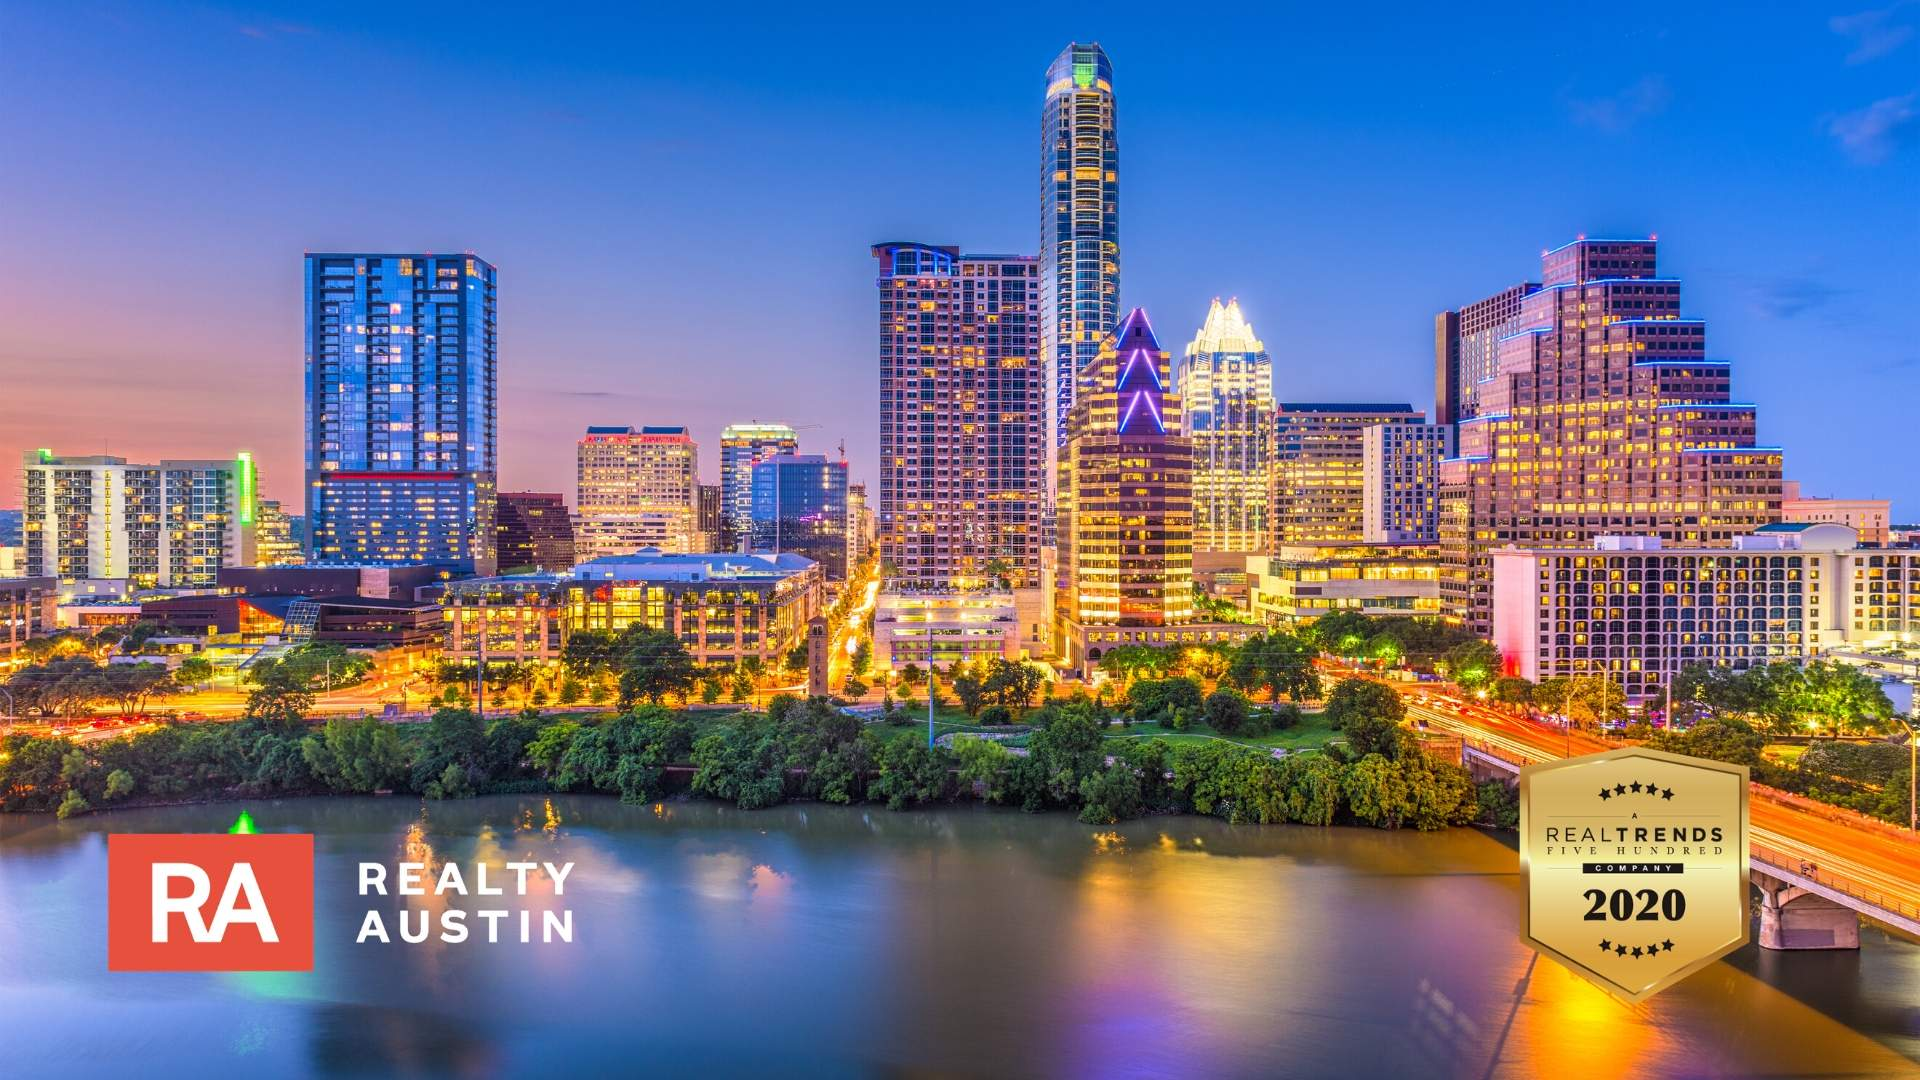 Realty Austin Climbs to No. 51 On Real Trends 500 Annual Report